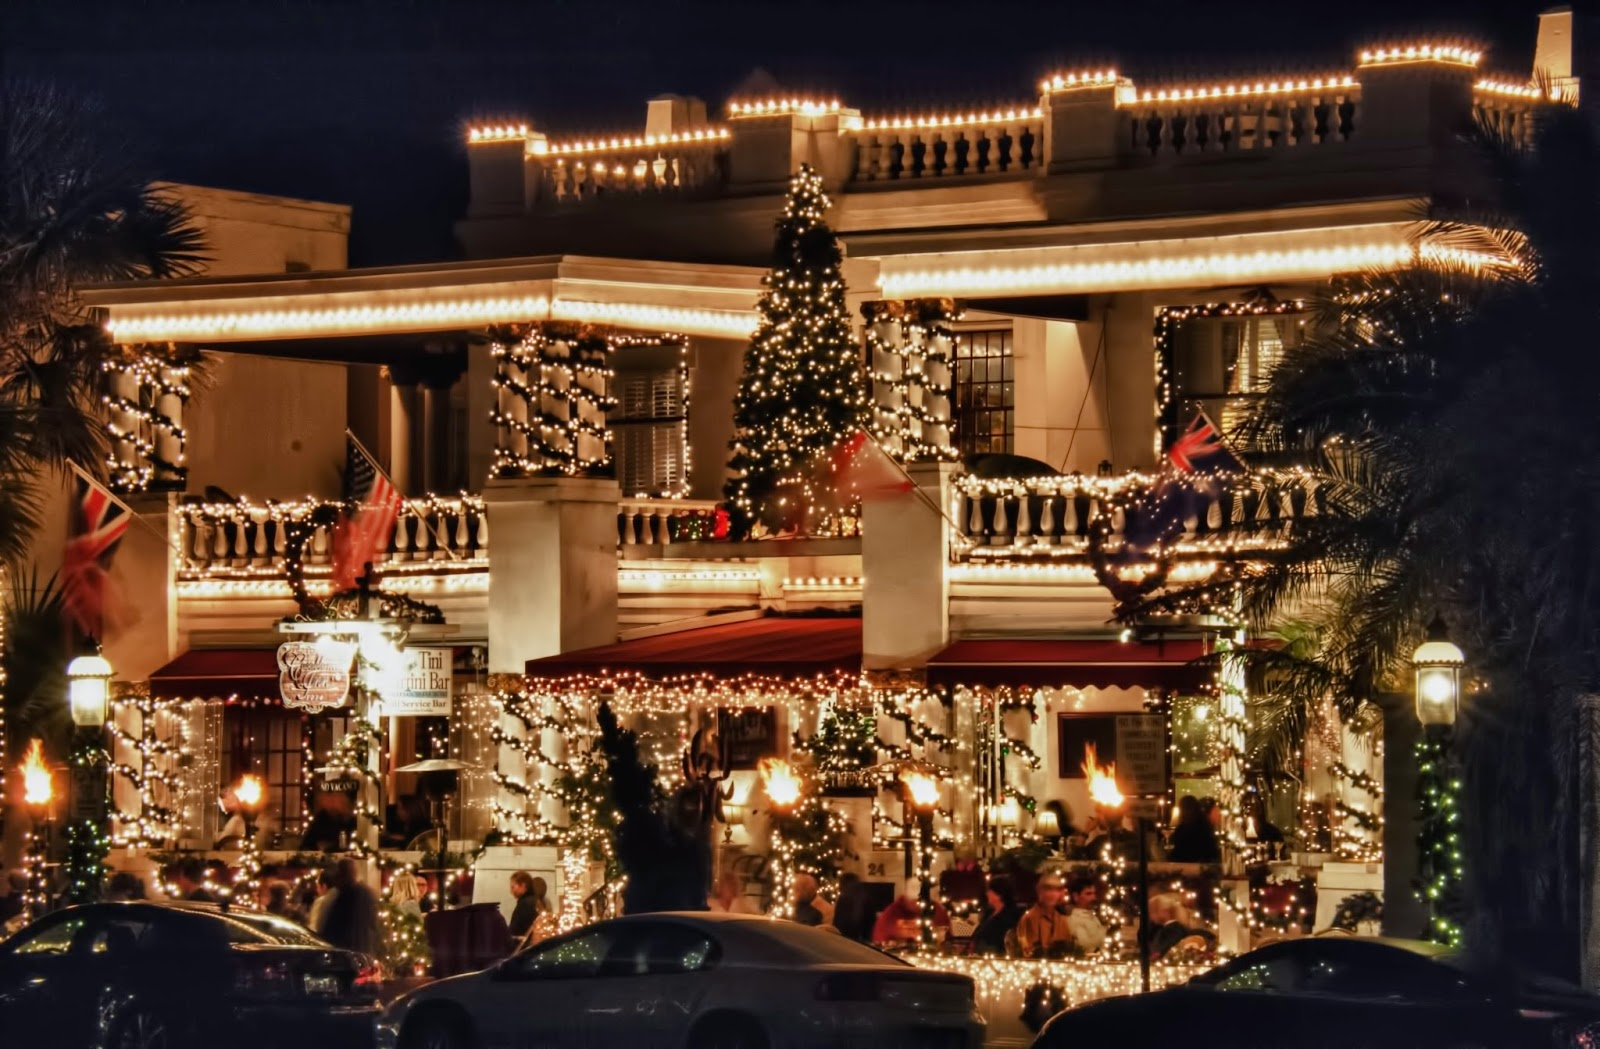 St Augustine Eats Question Christmas Lights On A T Picture Of The Casablanca Inn During Nights For Holidays